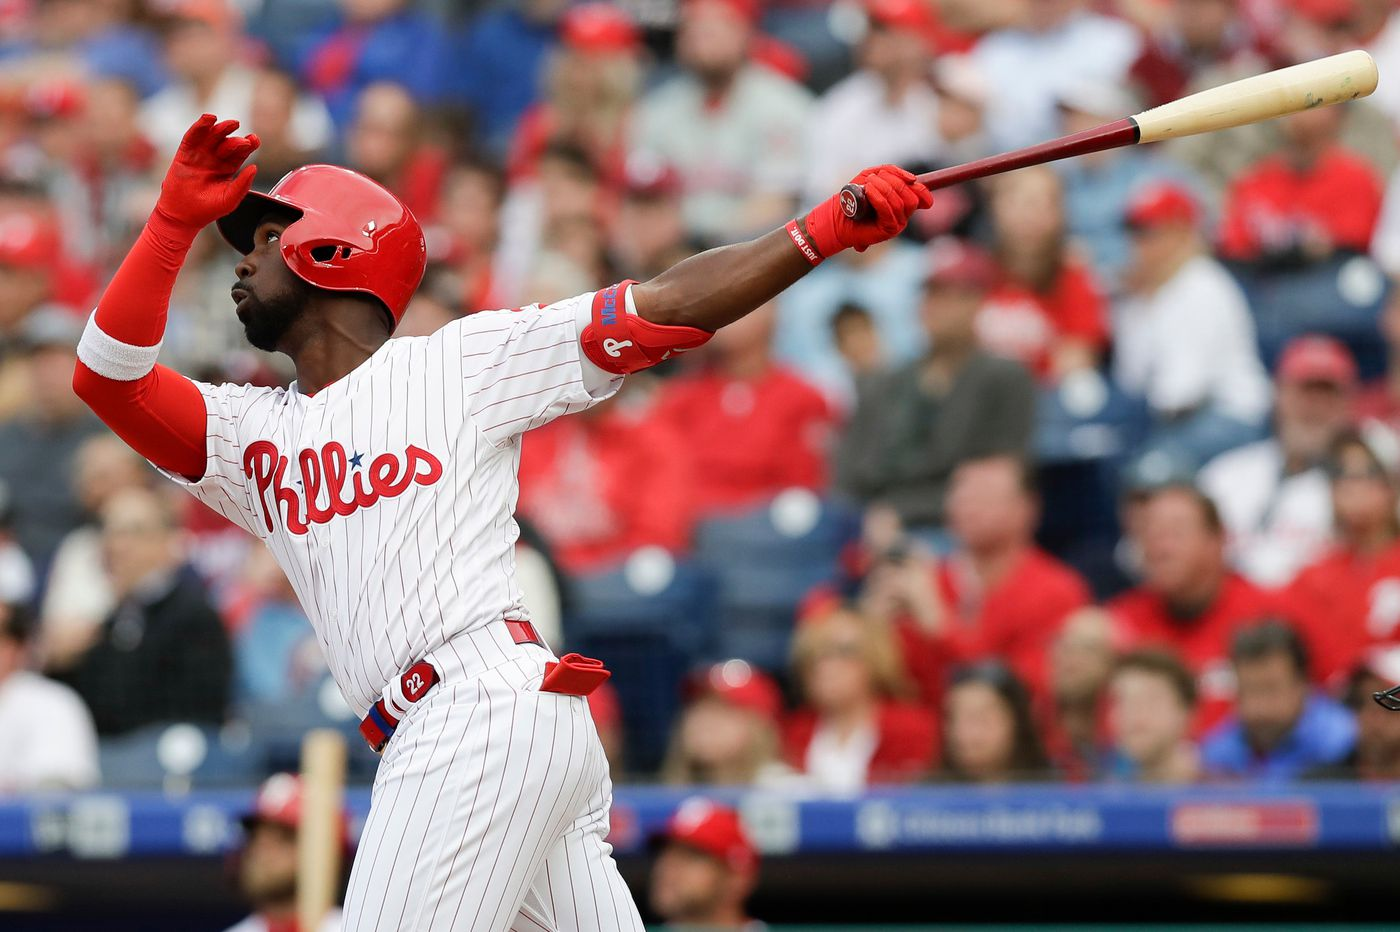 What makes Andrew McCutchen the ideal Phillies leadoff hitter